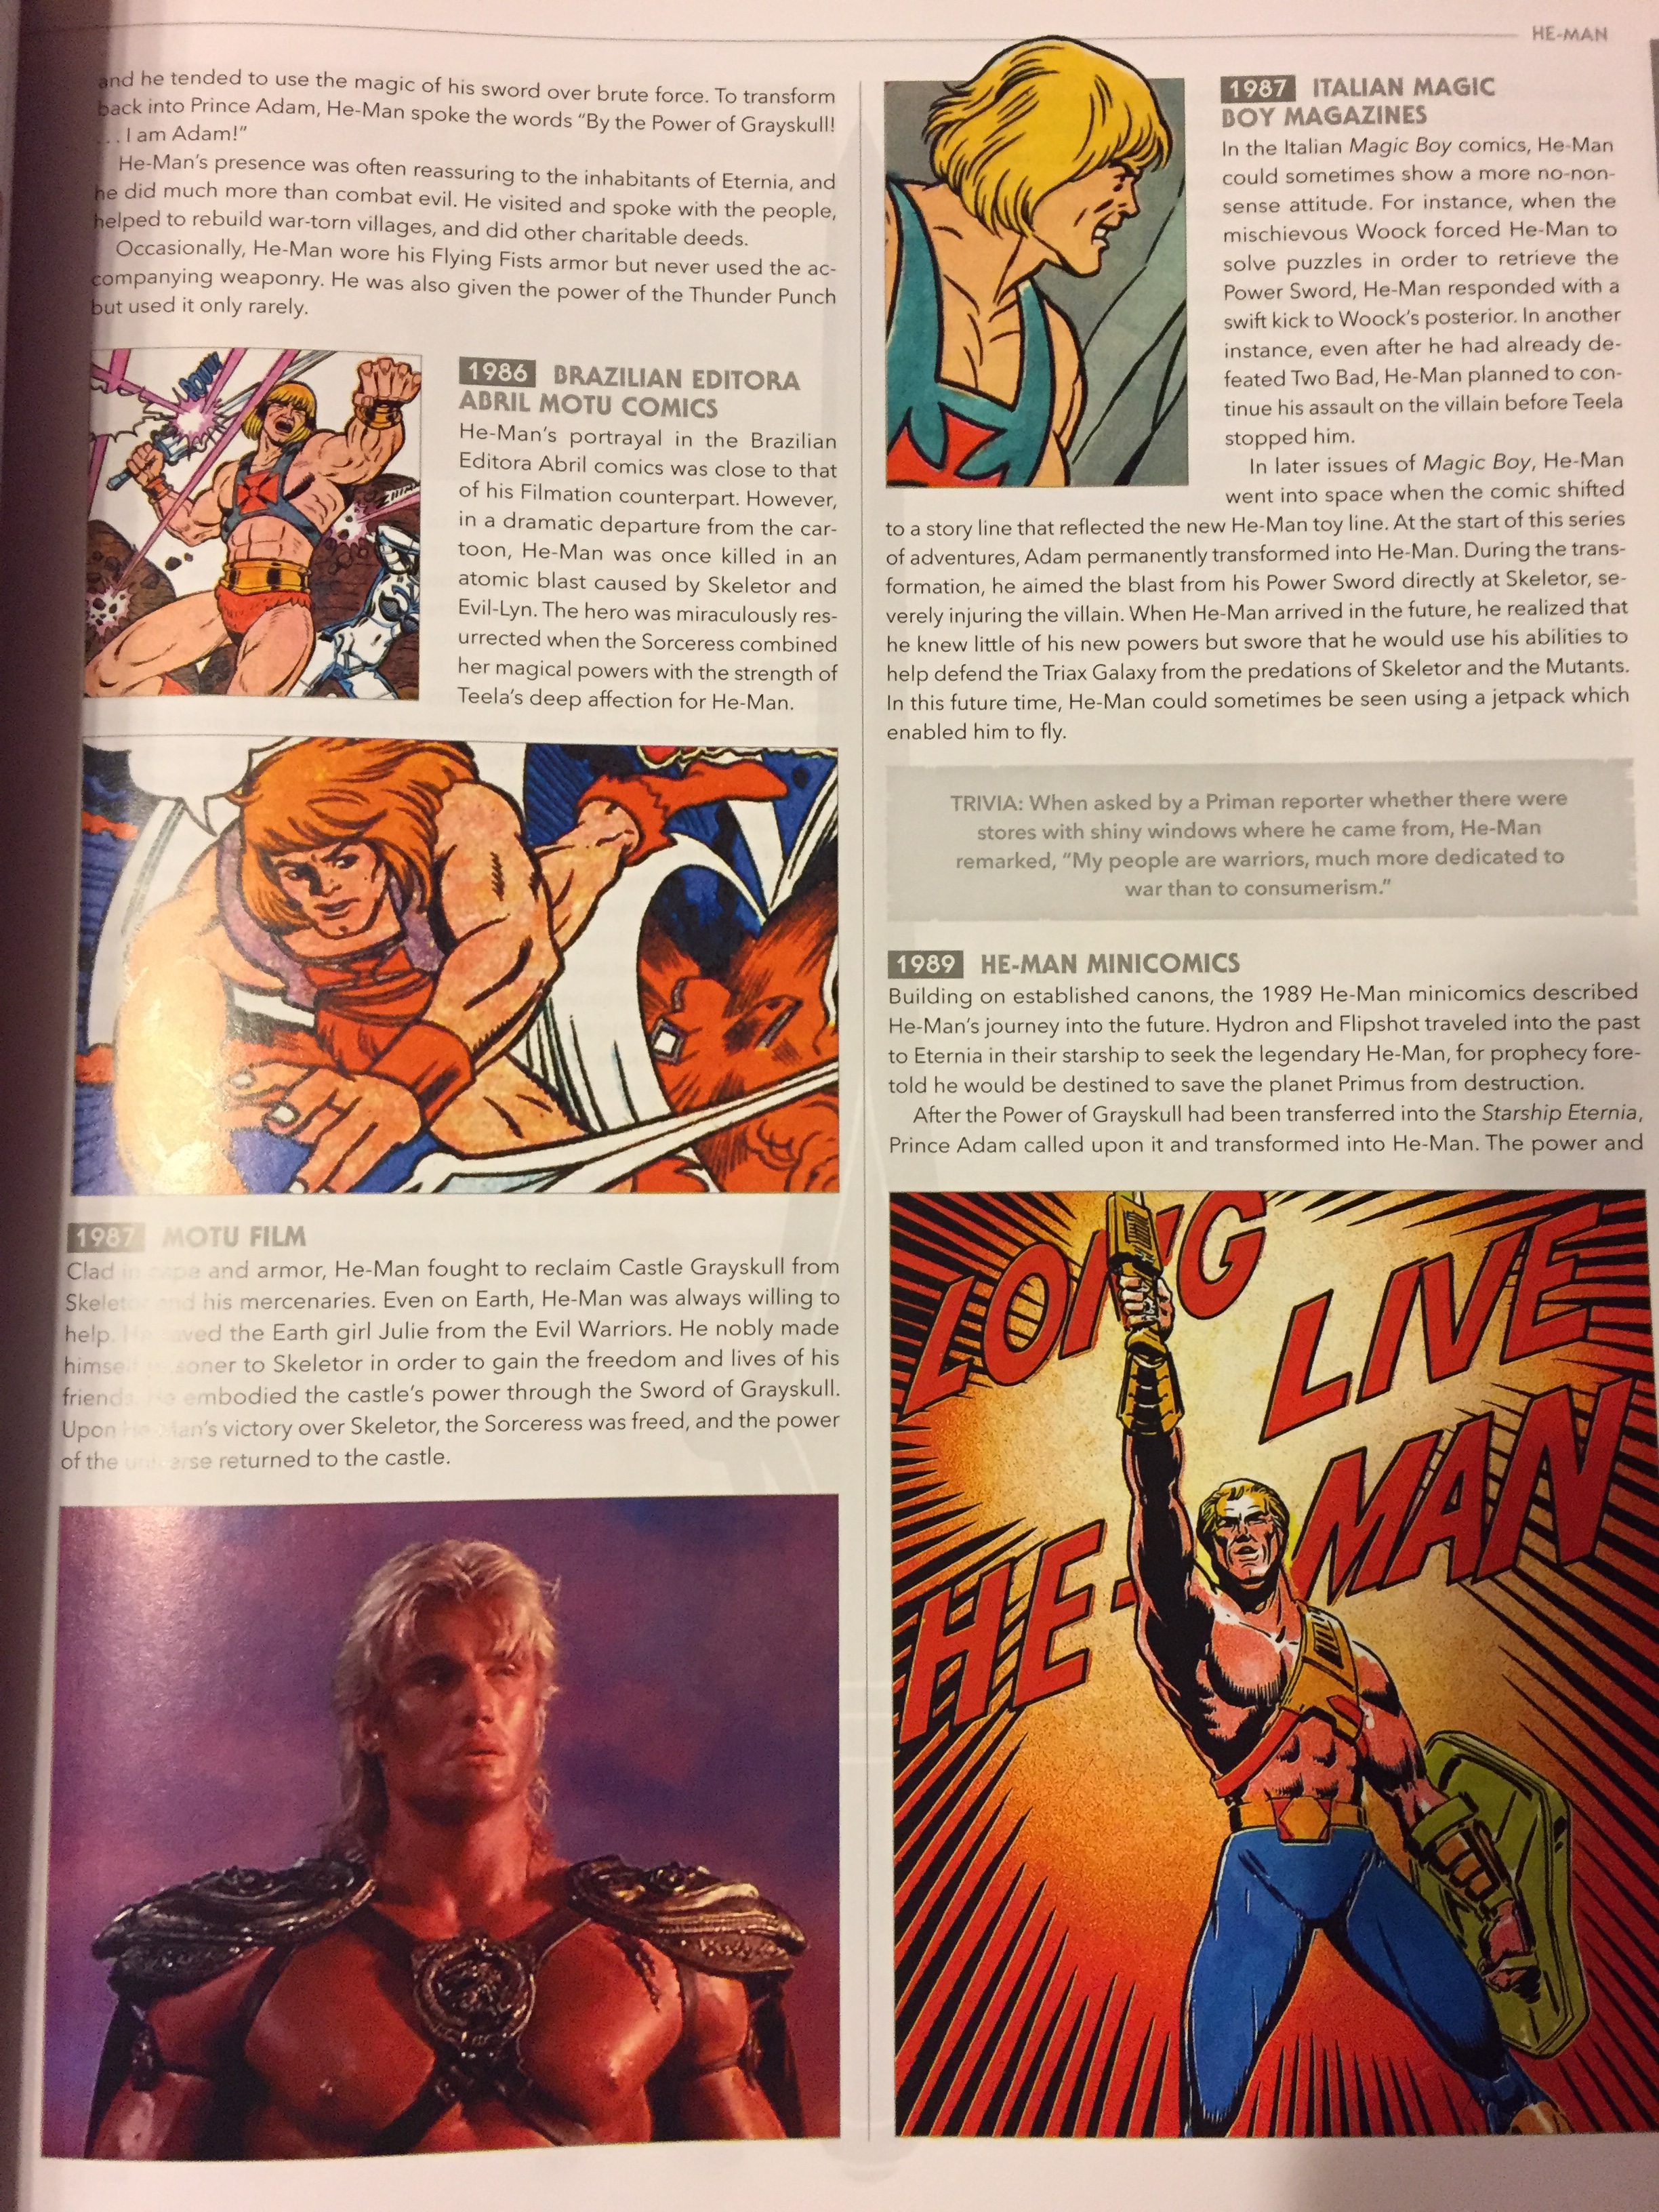 The encyclopedia breaks down the numerous continuities of each character from the mini-comics, to the cartoon series, the the masters of the universe movie, and more.